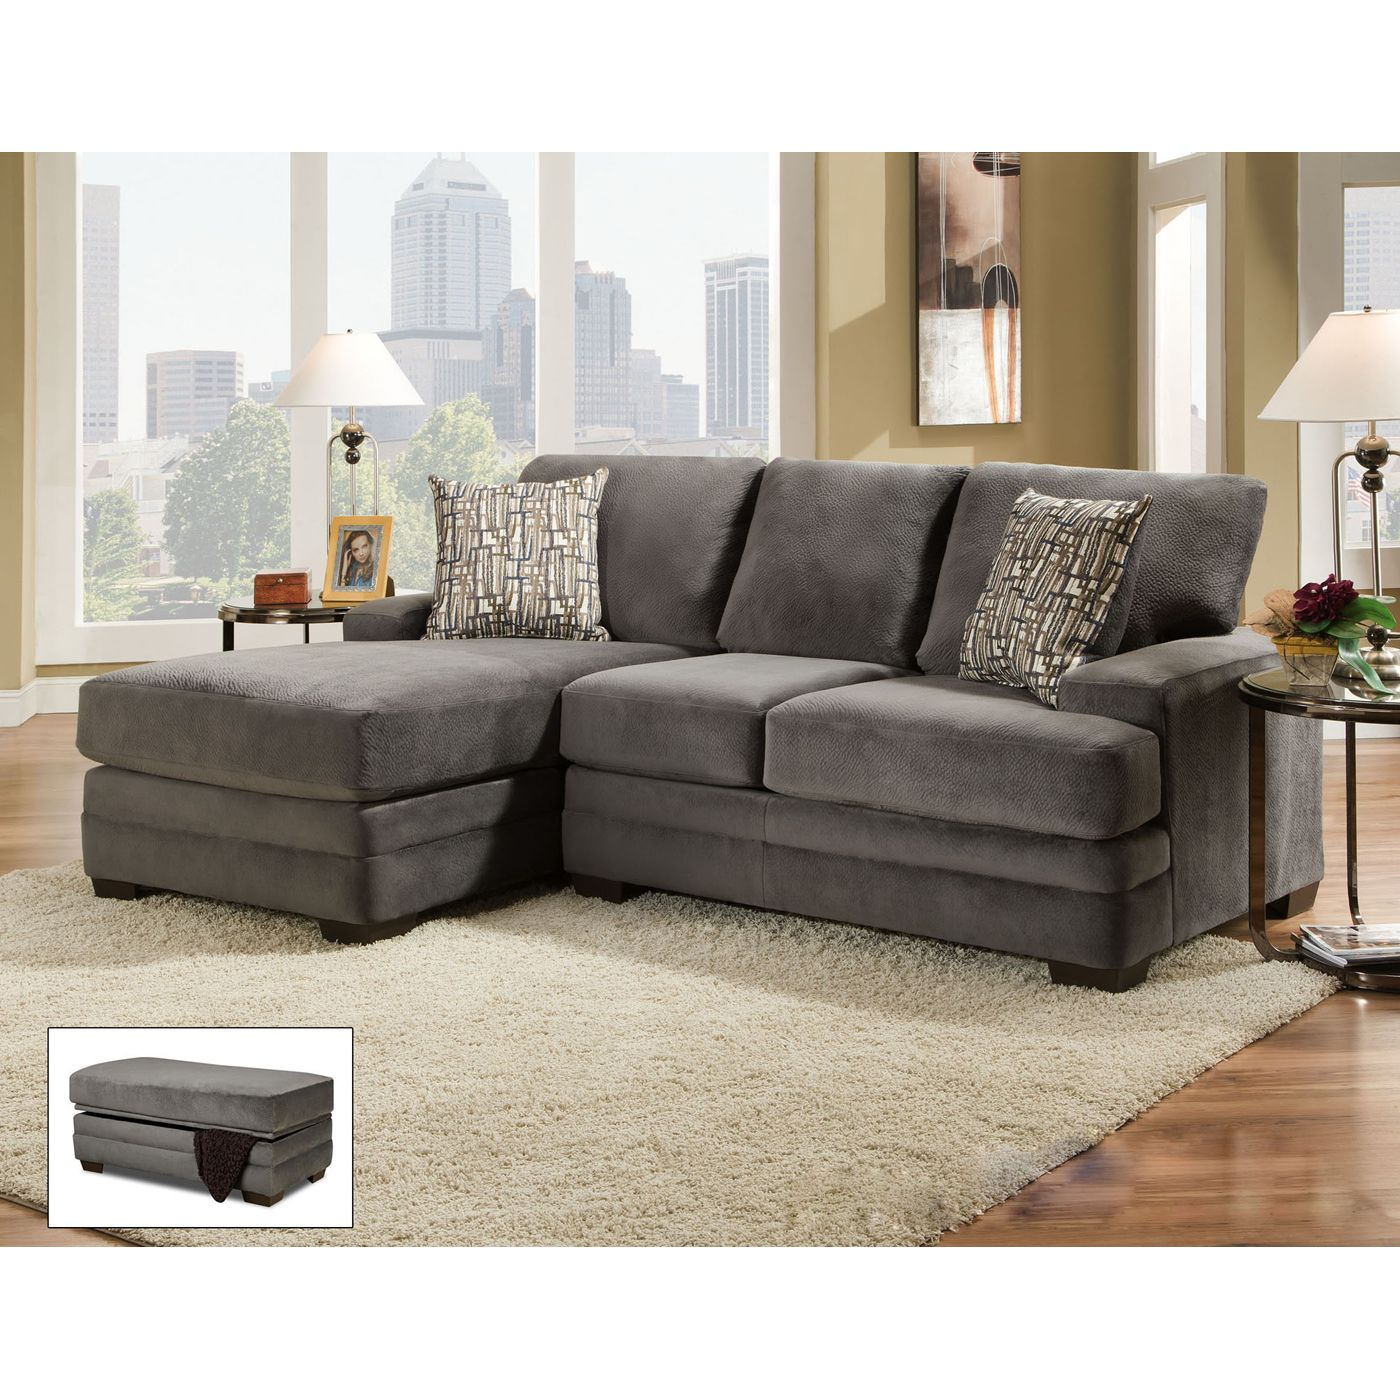 Brady Furniture Industries 162 0s Willshire Straight Sectional